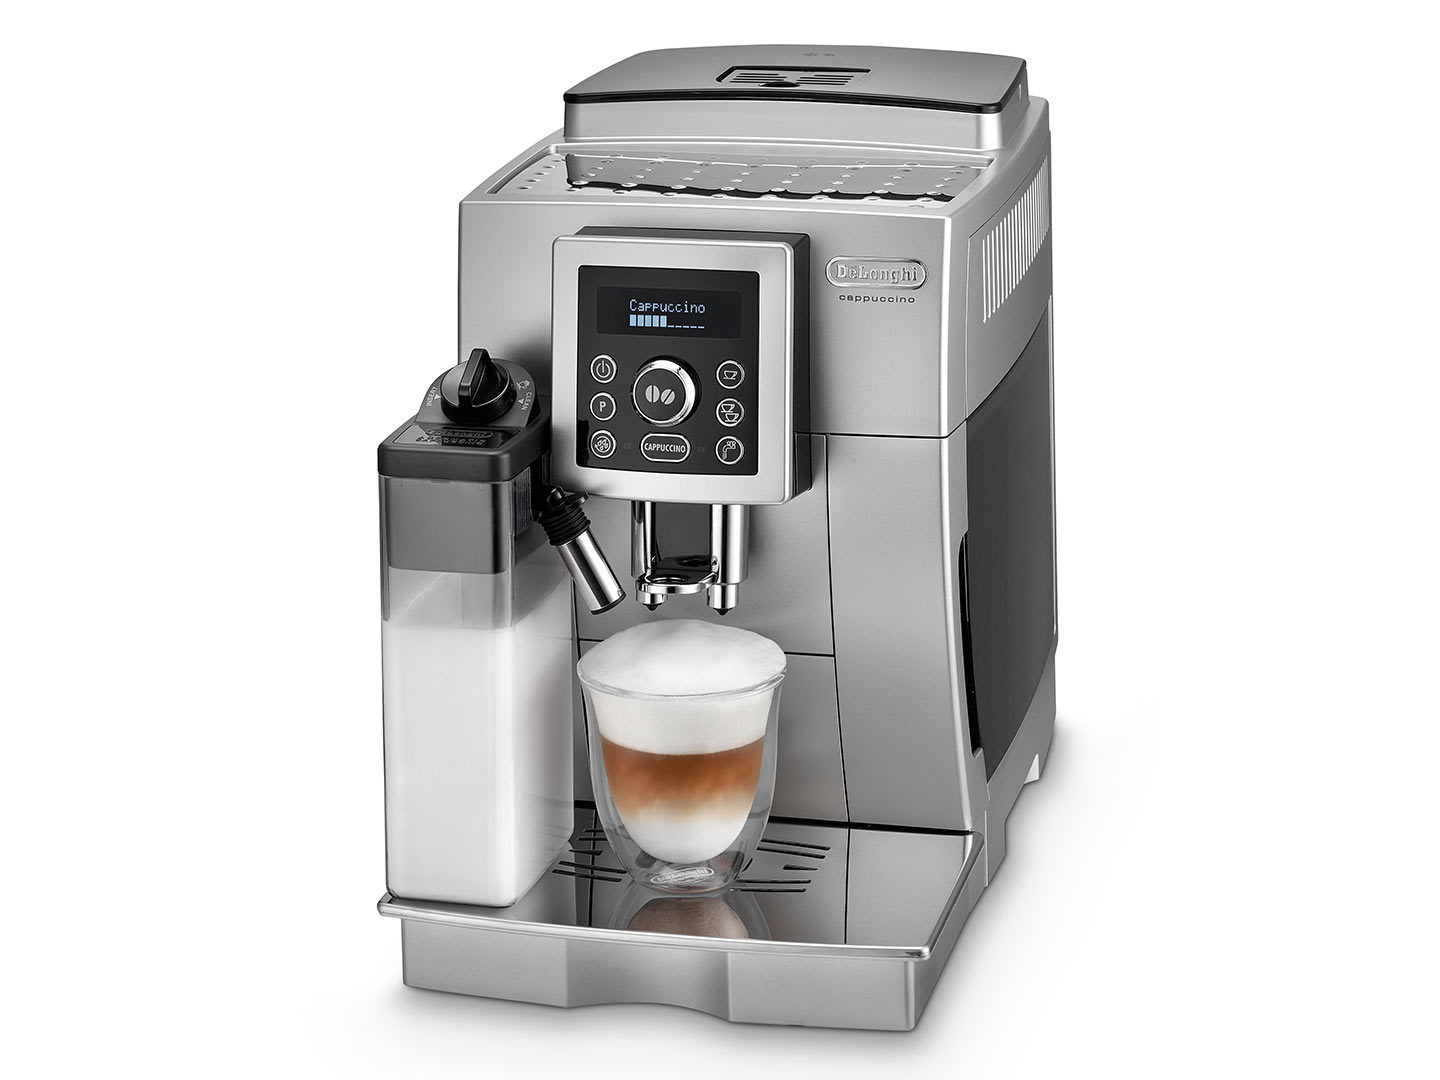 fully automatic coffee machine Compact ECAM23460S - Front